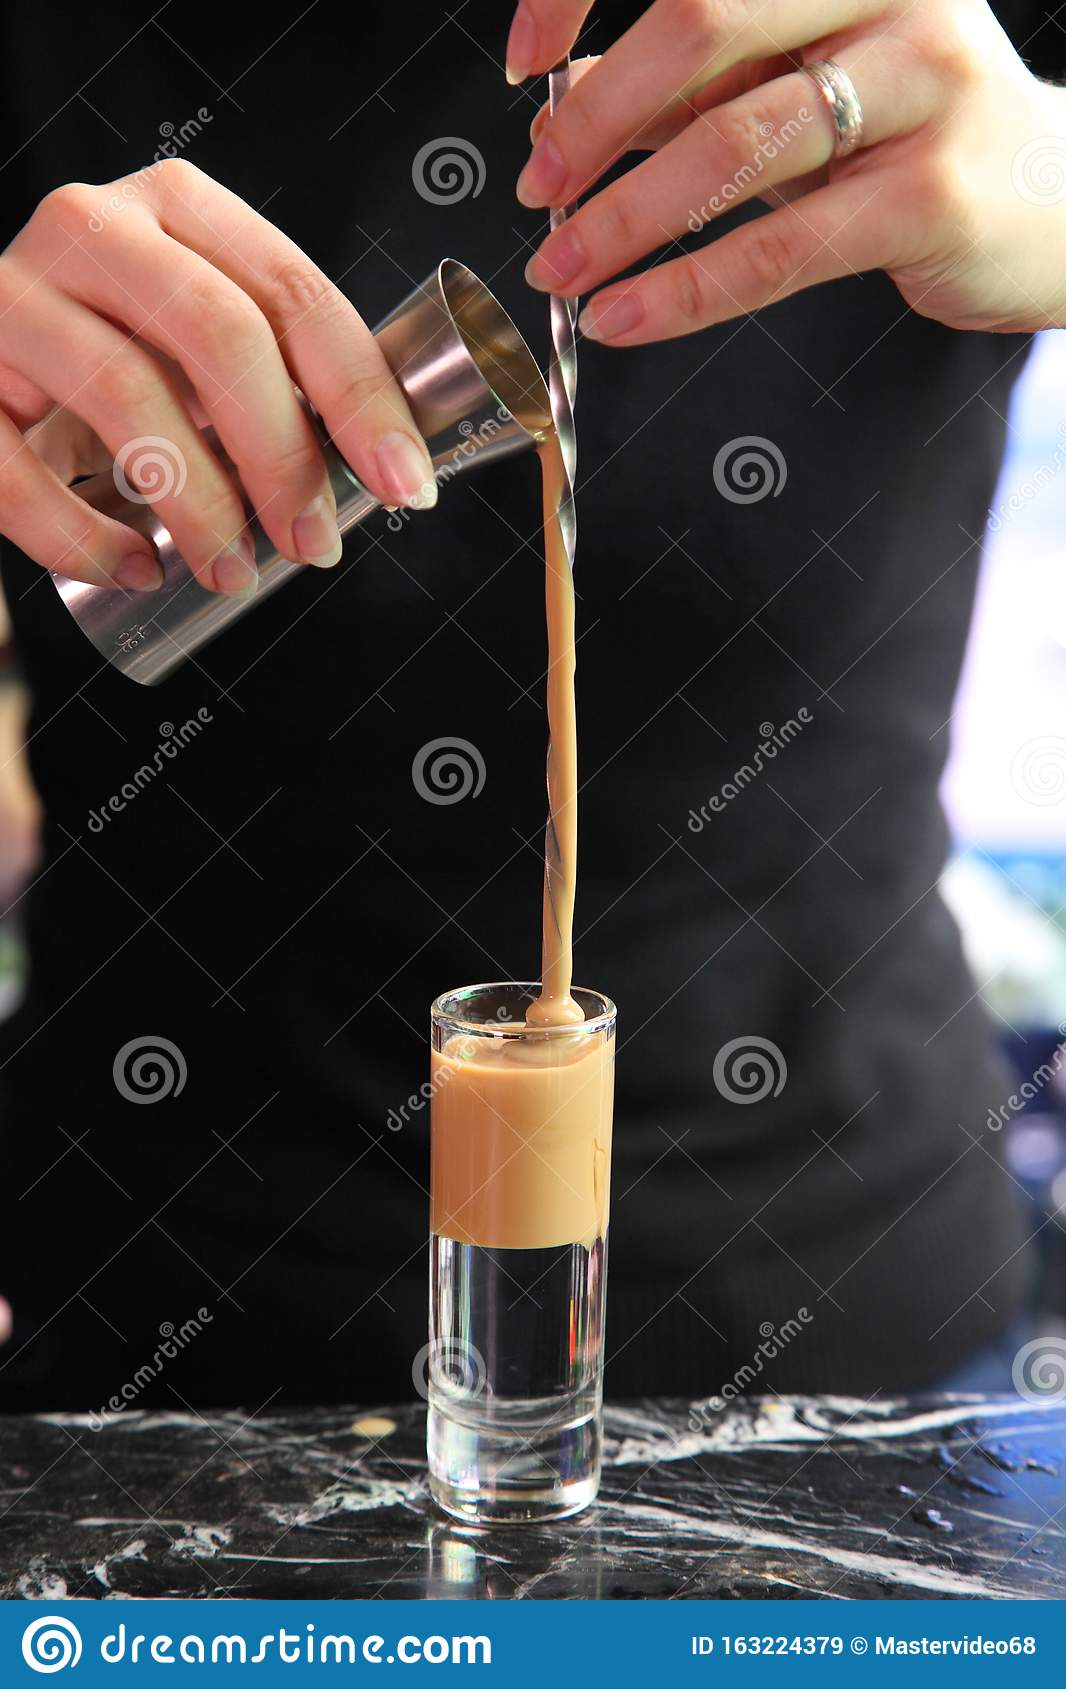 Alcoholic Cocktail Is A Slippery Nipple Shot Slippery Nipple At The Bar Stock Image Image Of Nipple Drops 163224379